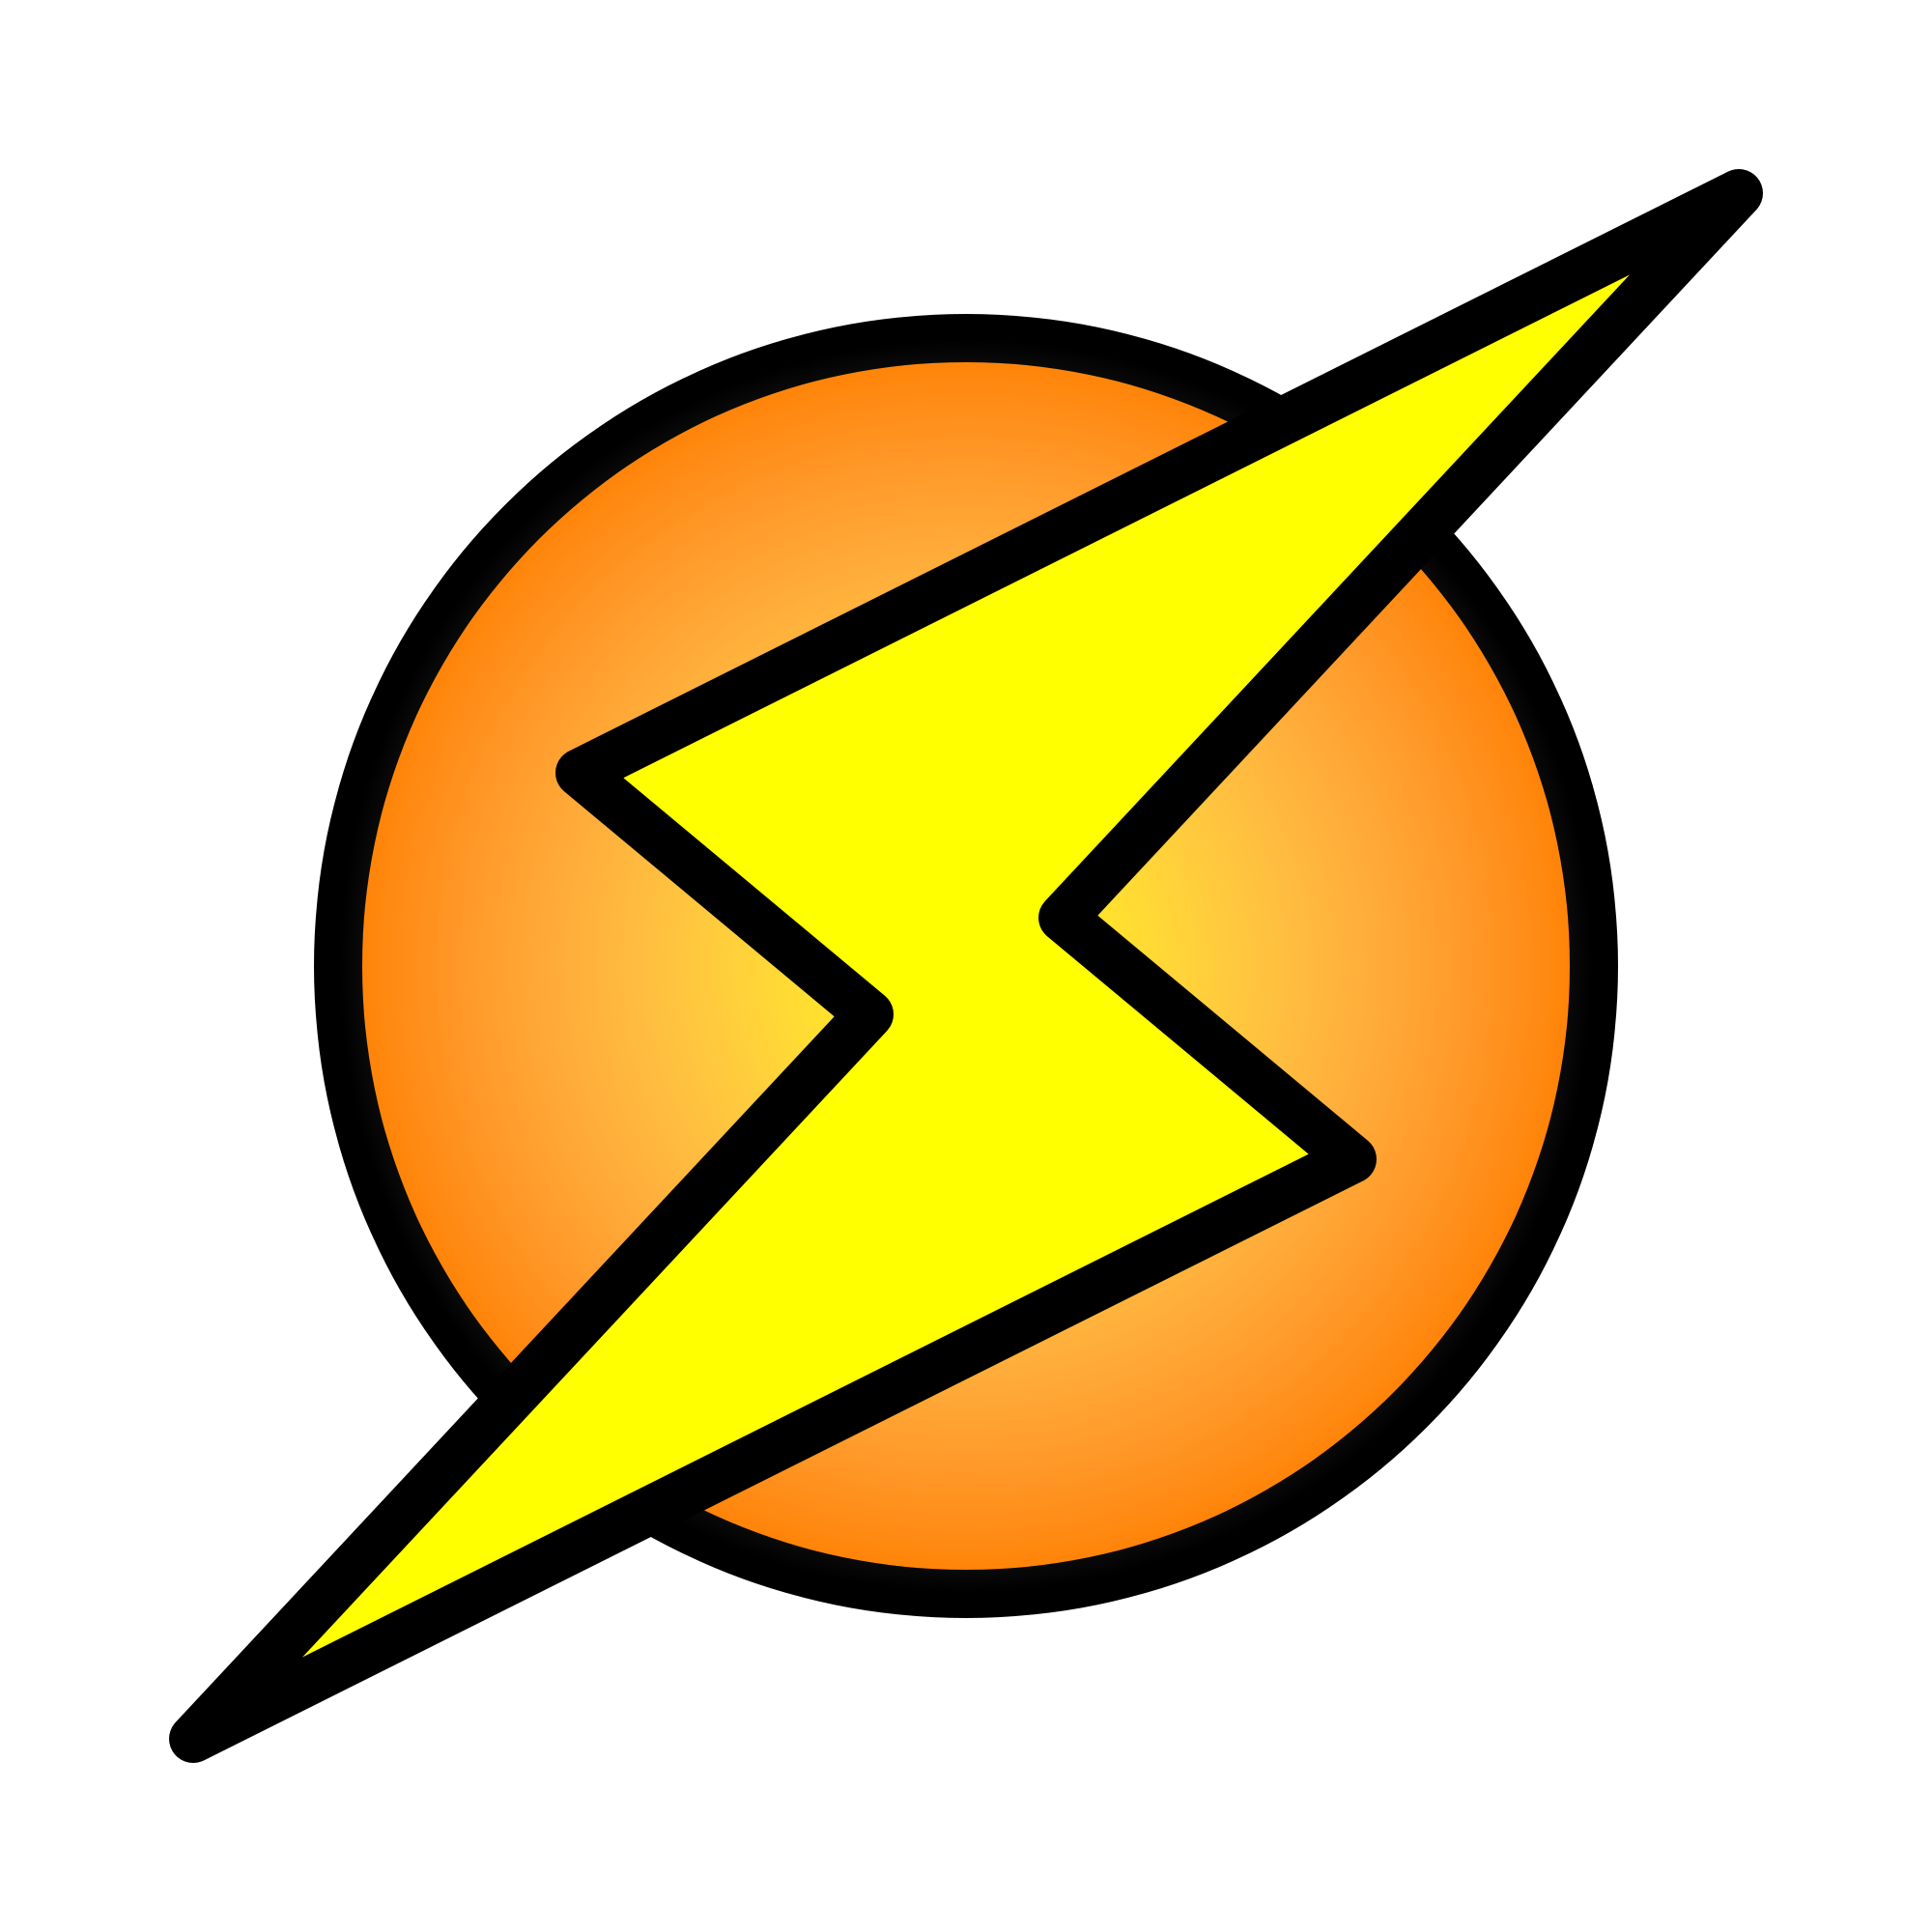 best electricity bolt. Electric clipart thunderbolt